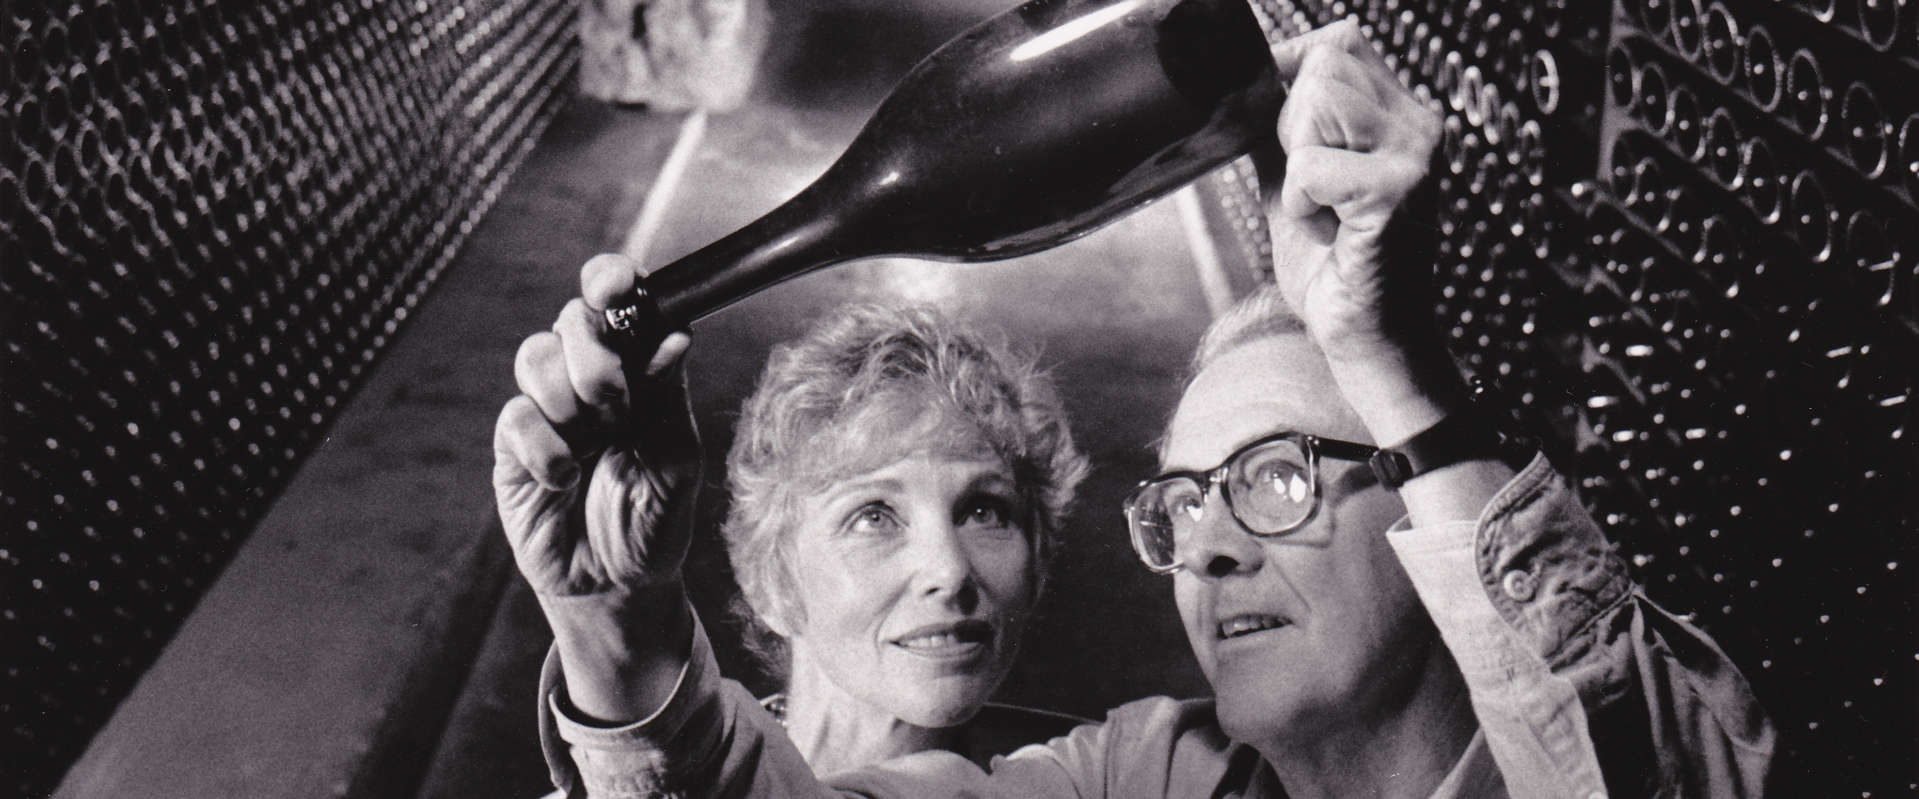 Schramsberg's founder and patriarch, Jack Davies, holds up a sparkling wine bottle to inspect fermentation with Jamie Davies in the historic wine caves, circa 1980